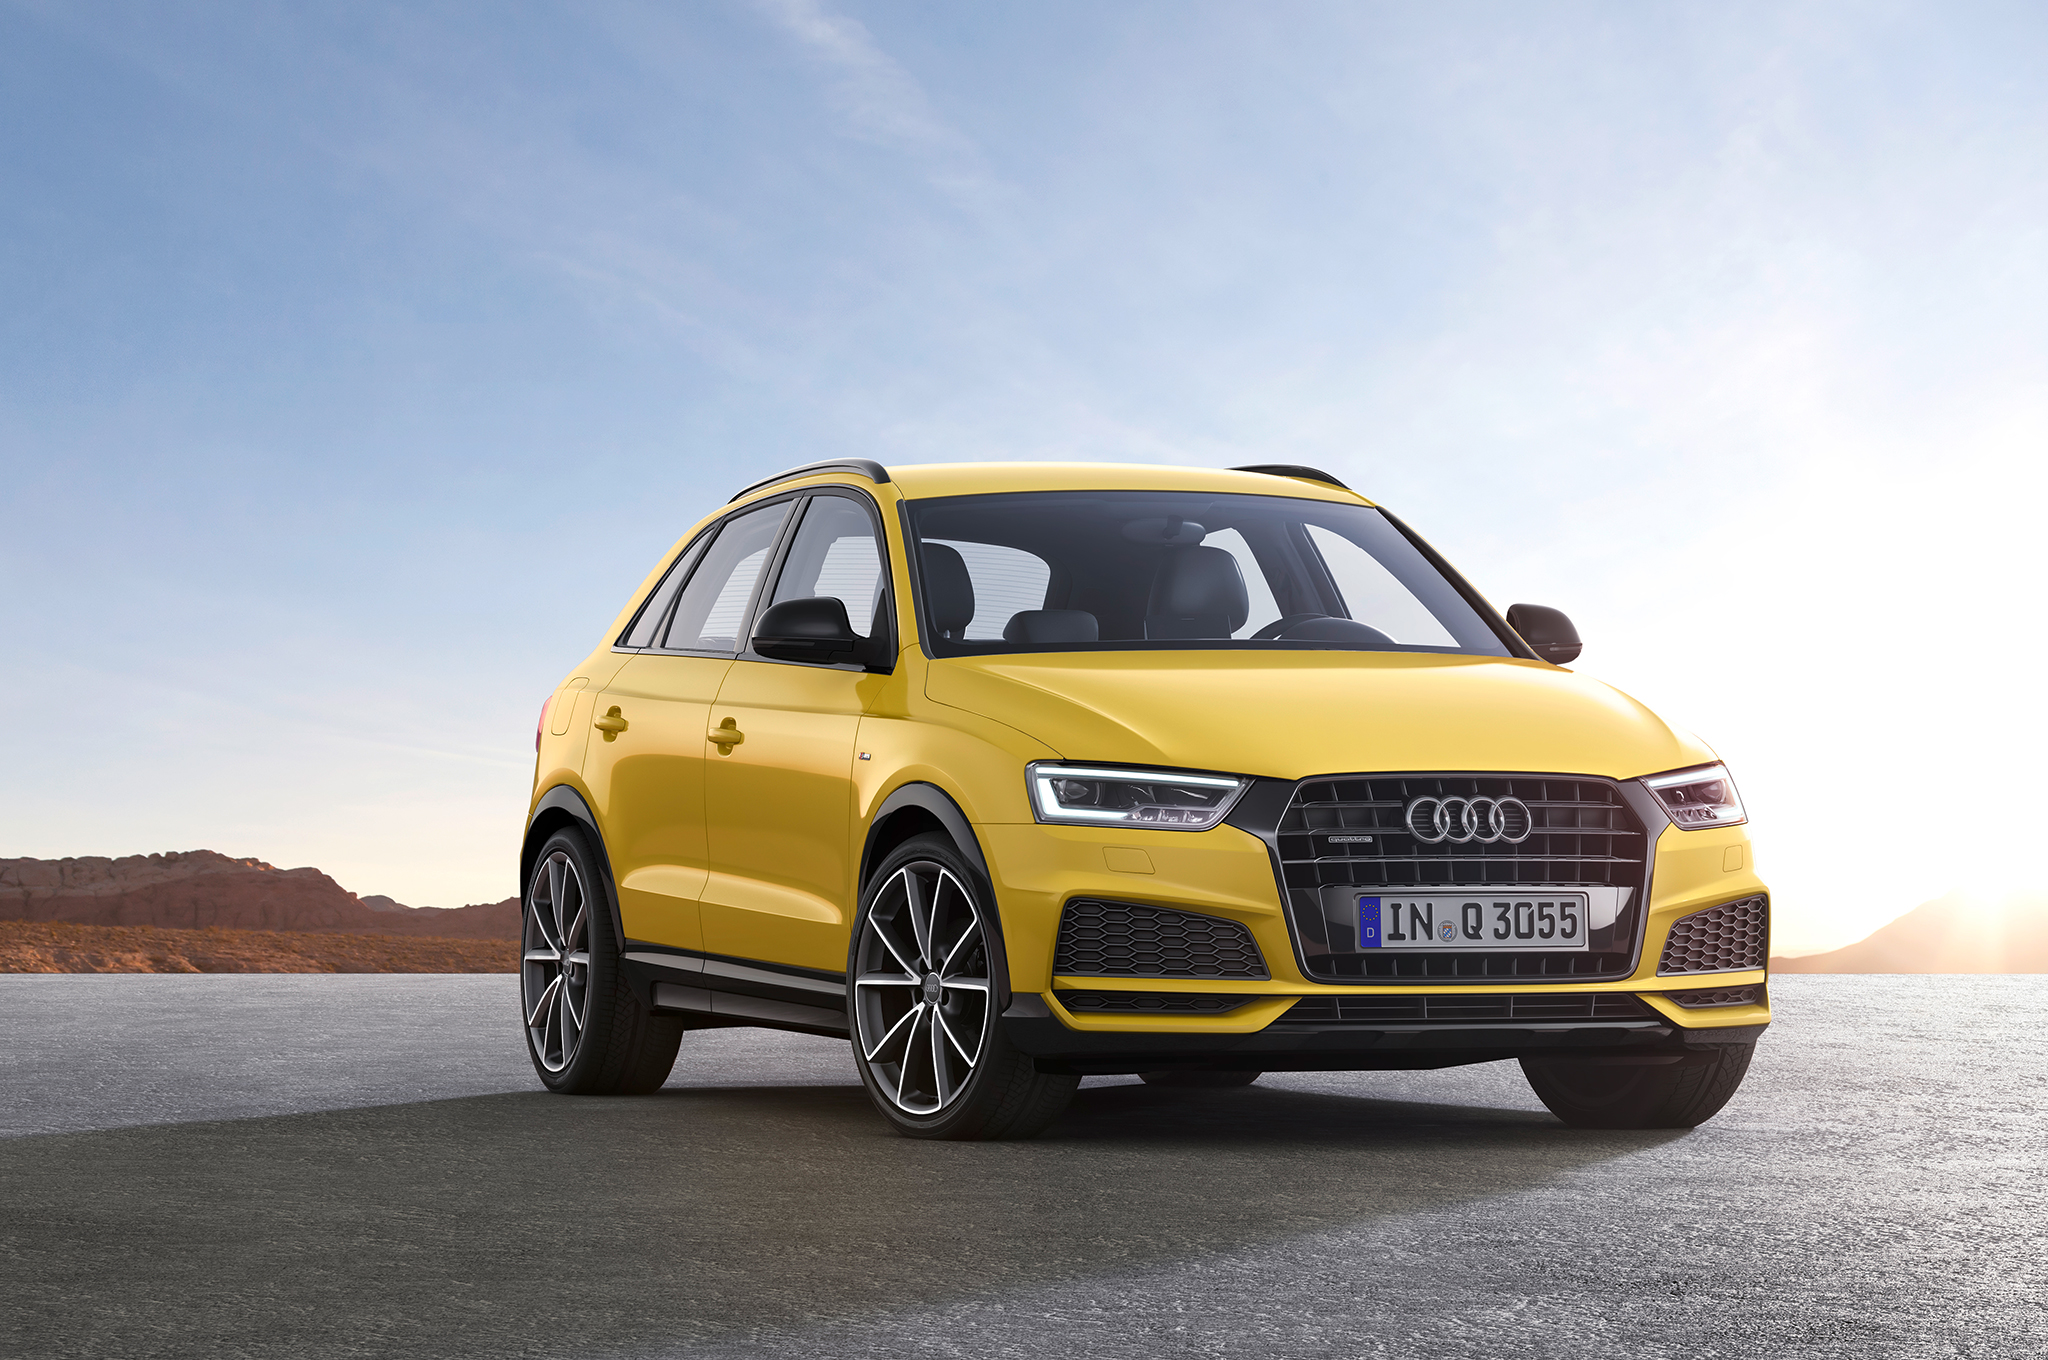 New 2018 Audi Q3 Gas Mileage